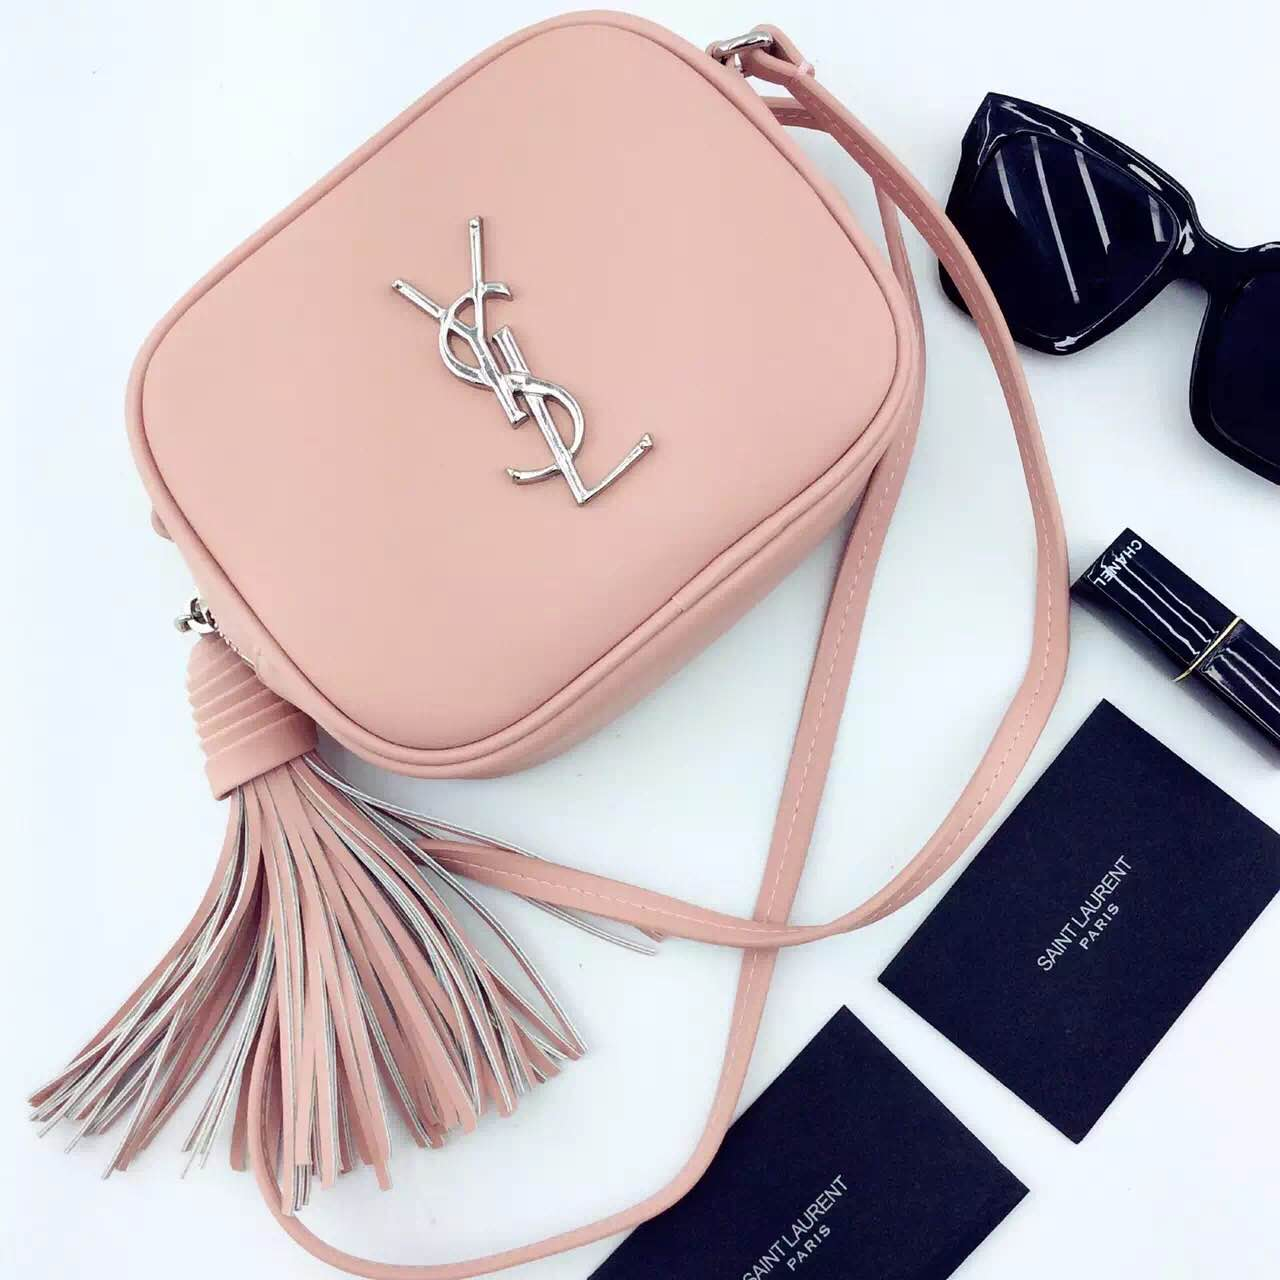 New Arrival 2016 Cheap Ysl Out Sale With Free Shipping Saint